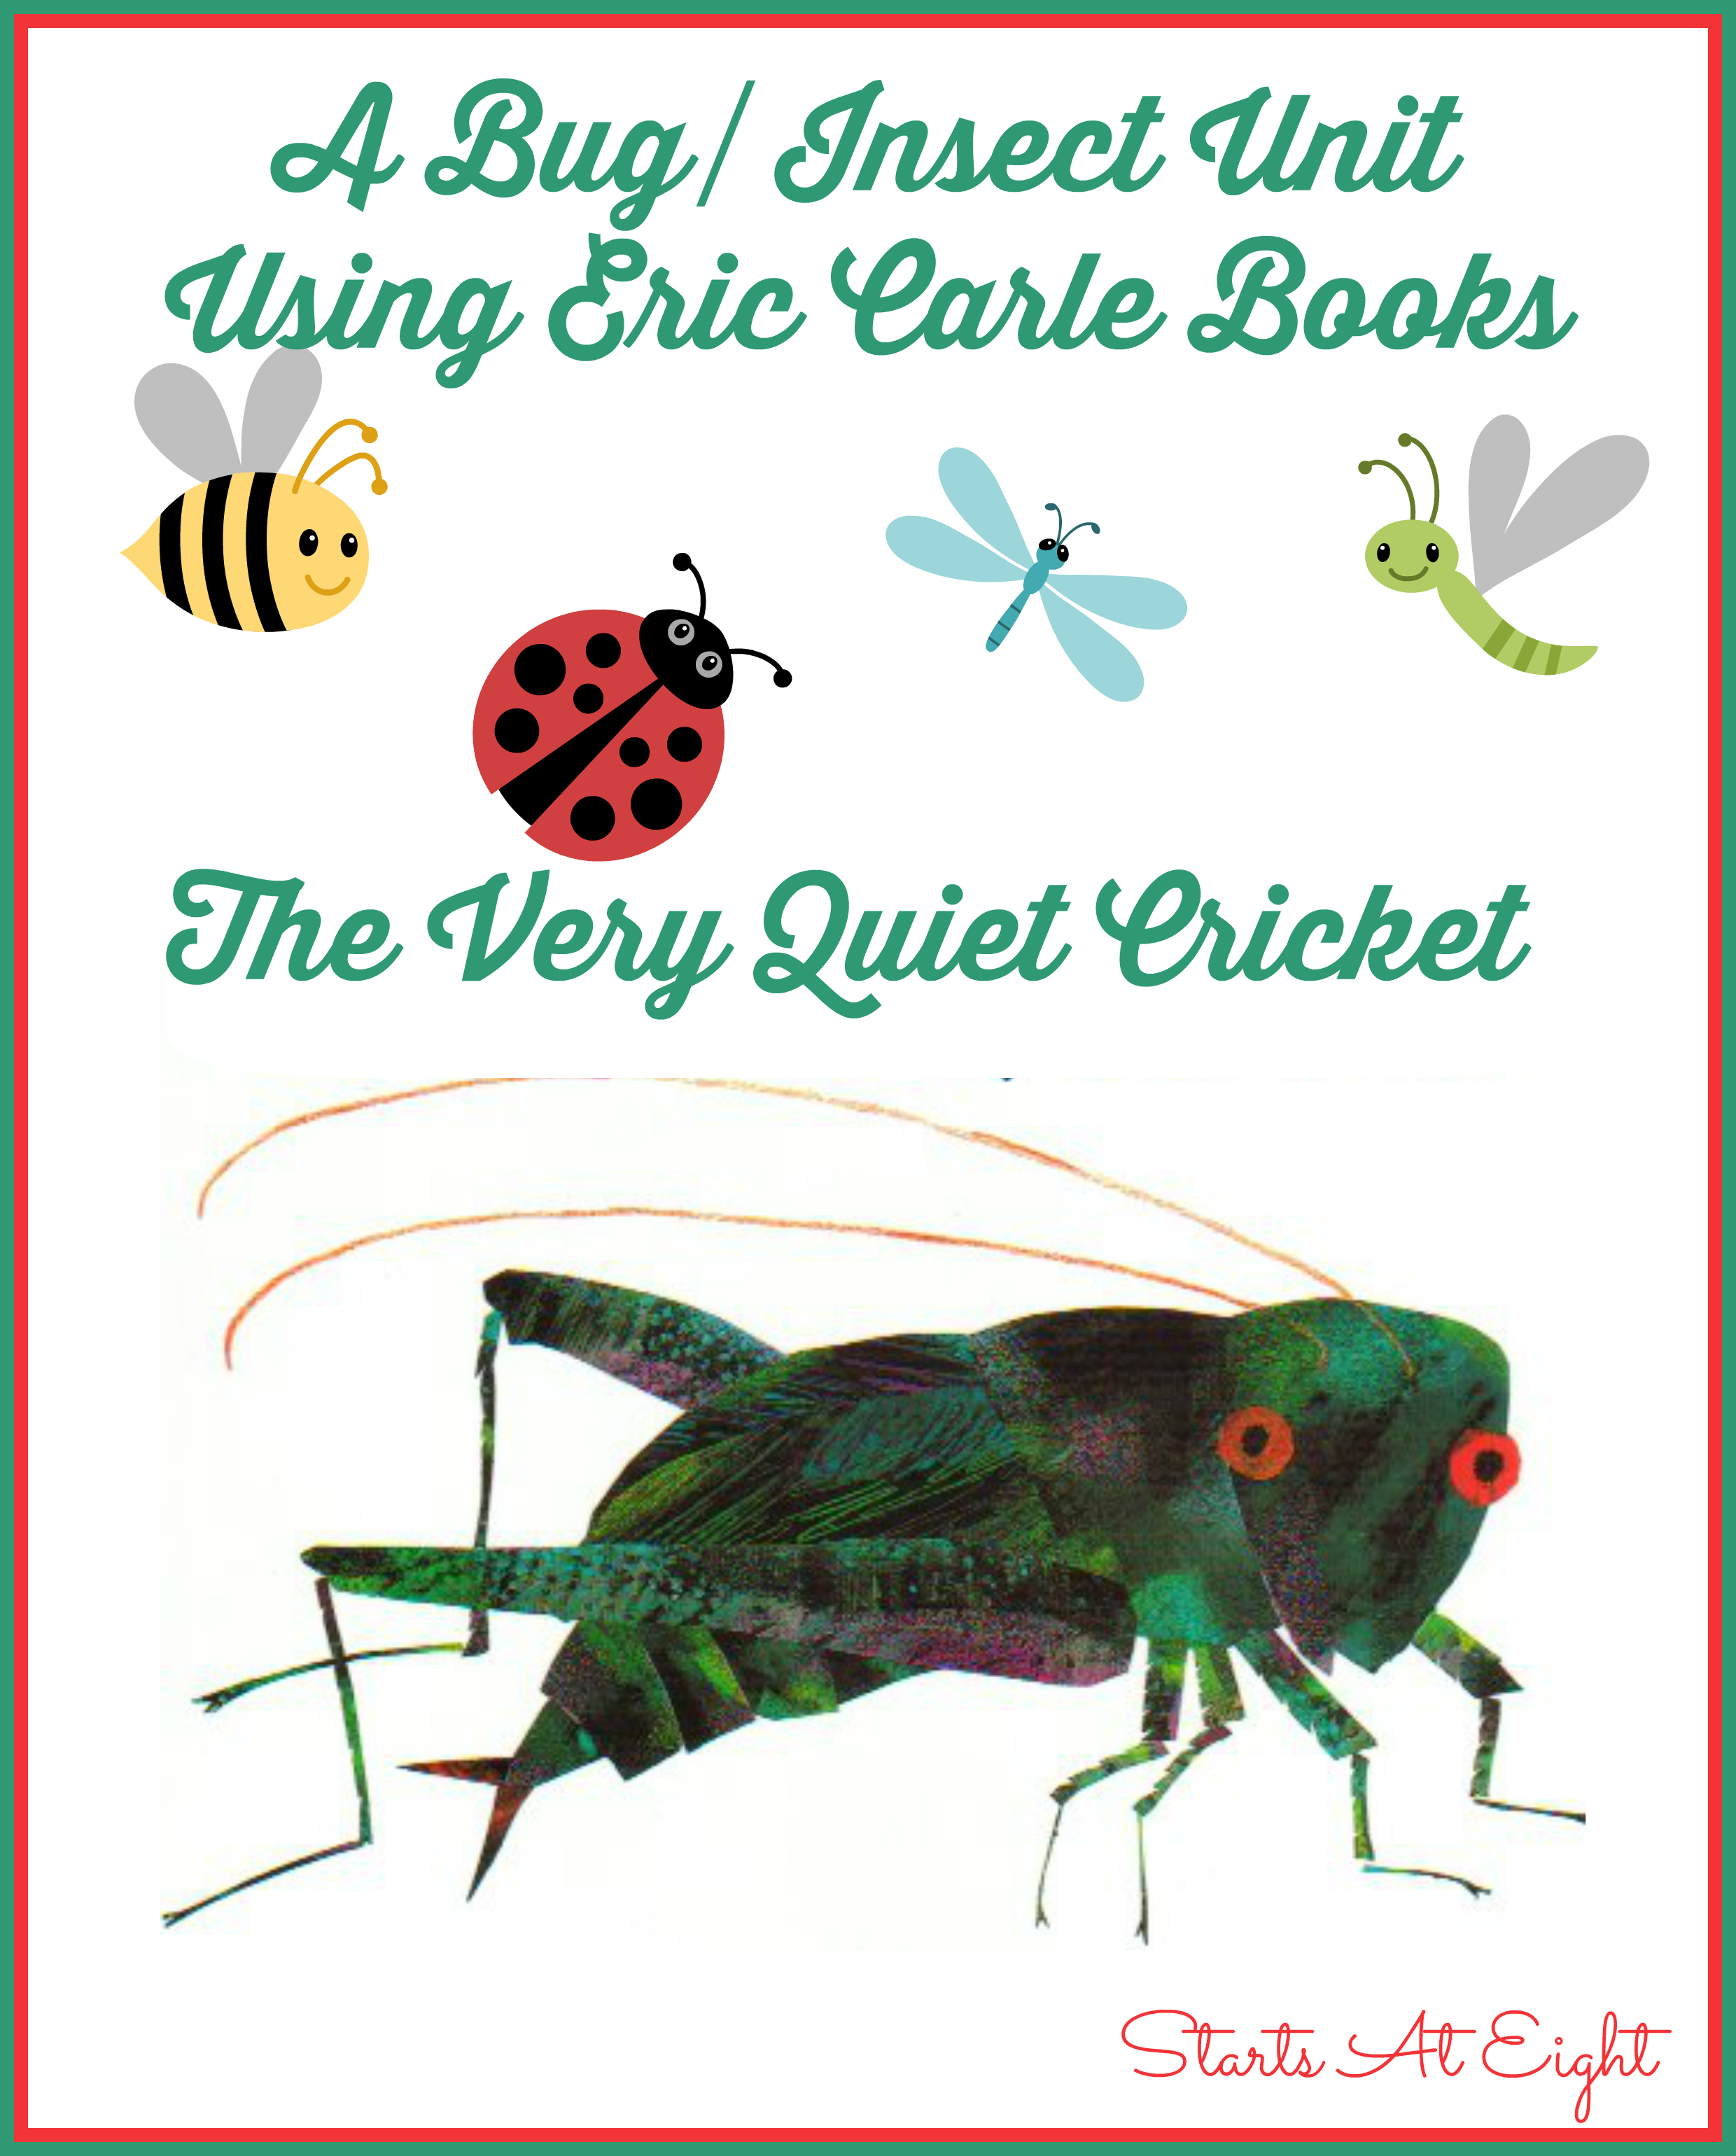 A Buginsect Unit Using Eric Carle Books The Very Quiet Cricket on Preschool Seasons